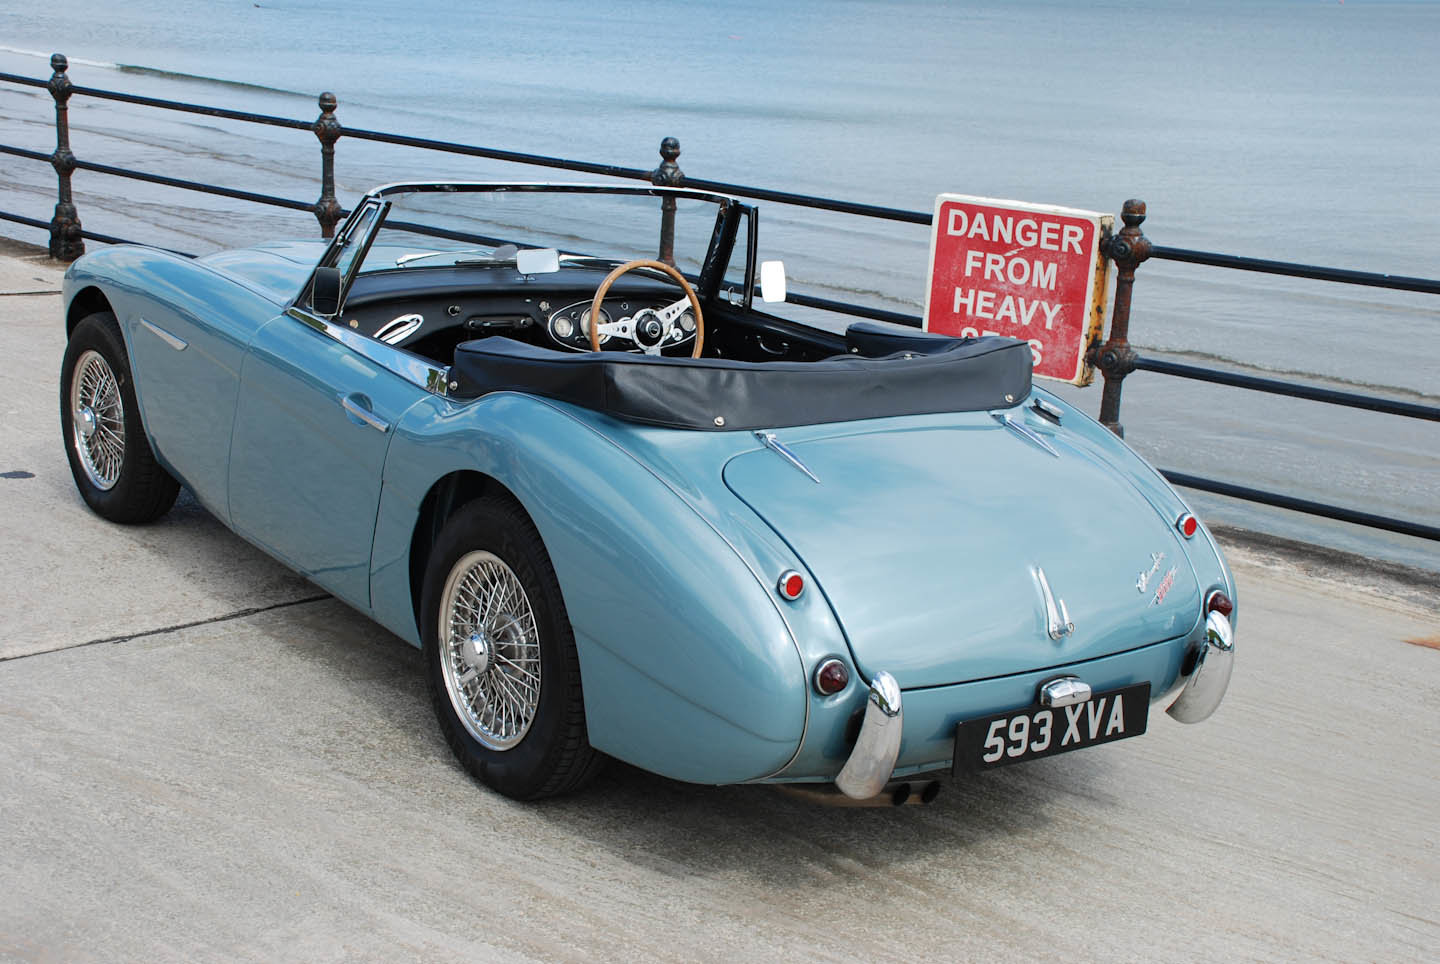 1962 Austin Healey 3000 Mk 2a BJ7 For Sale (picture 5 of 10)